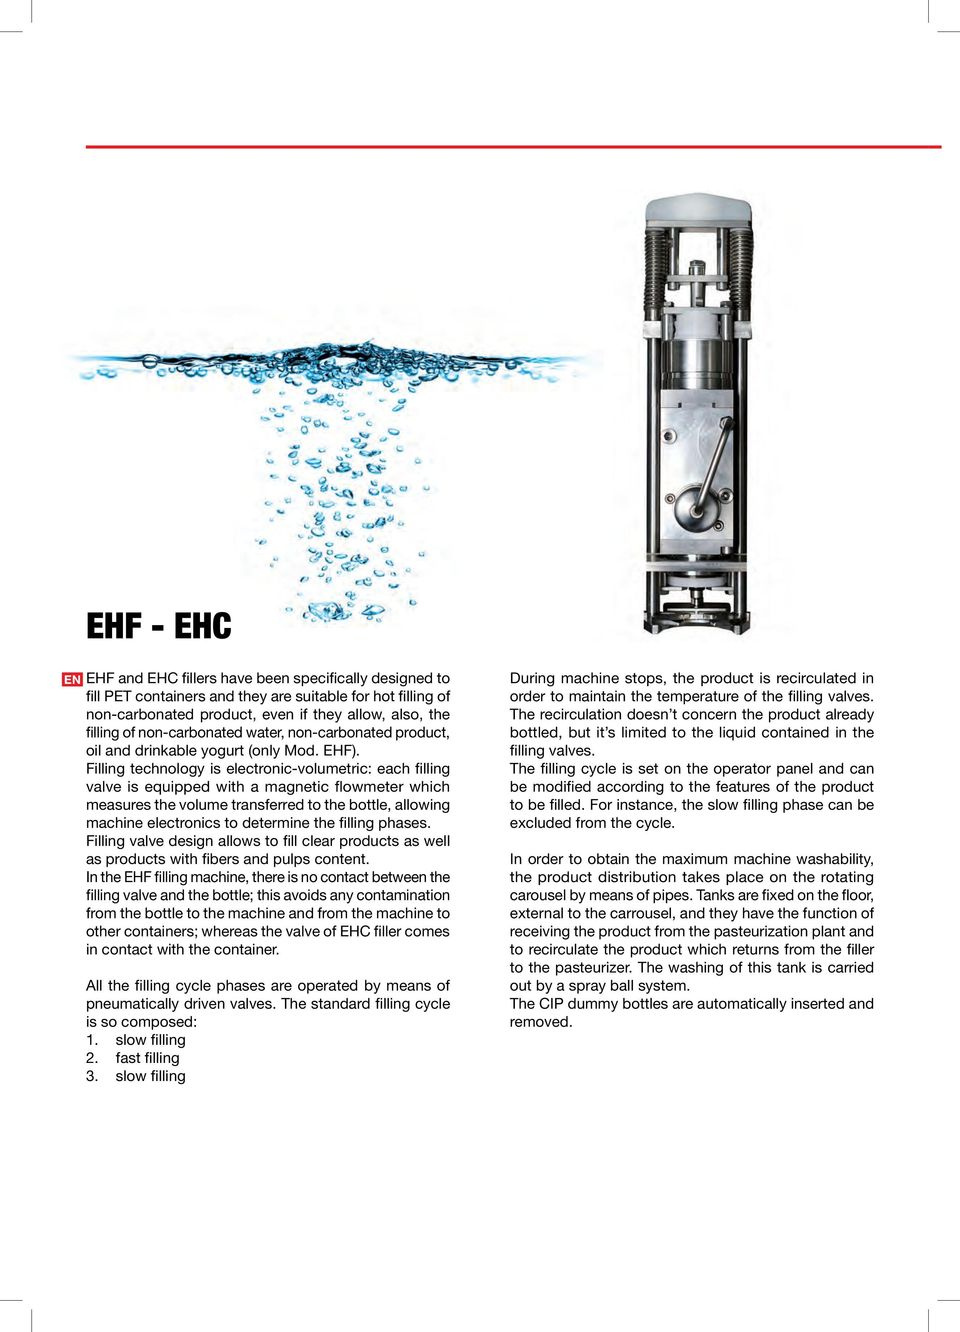 Filling technology is electronic-volumetric: each filling valve is equipped with a magnetic flowmeter which measures the volume transferred to the bottle, allowing machine electronics to determine